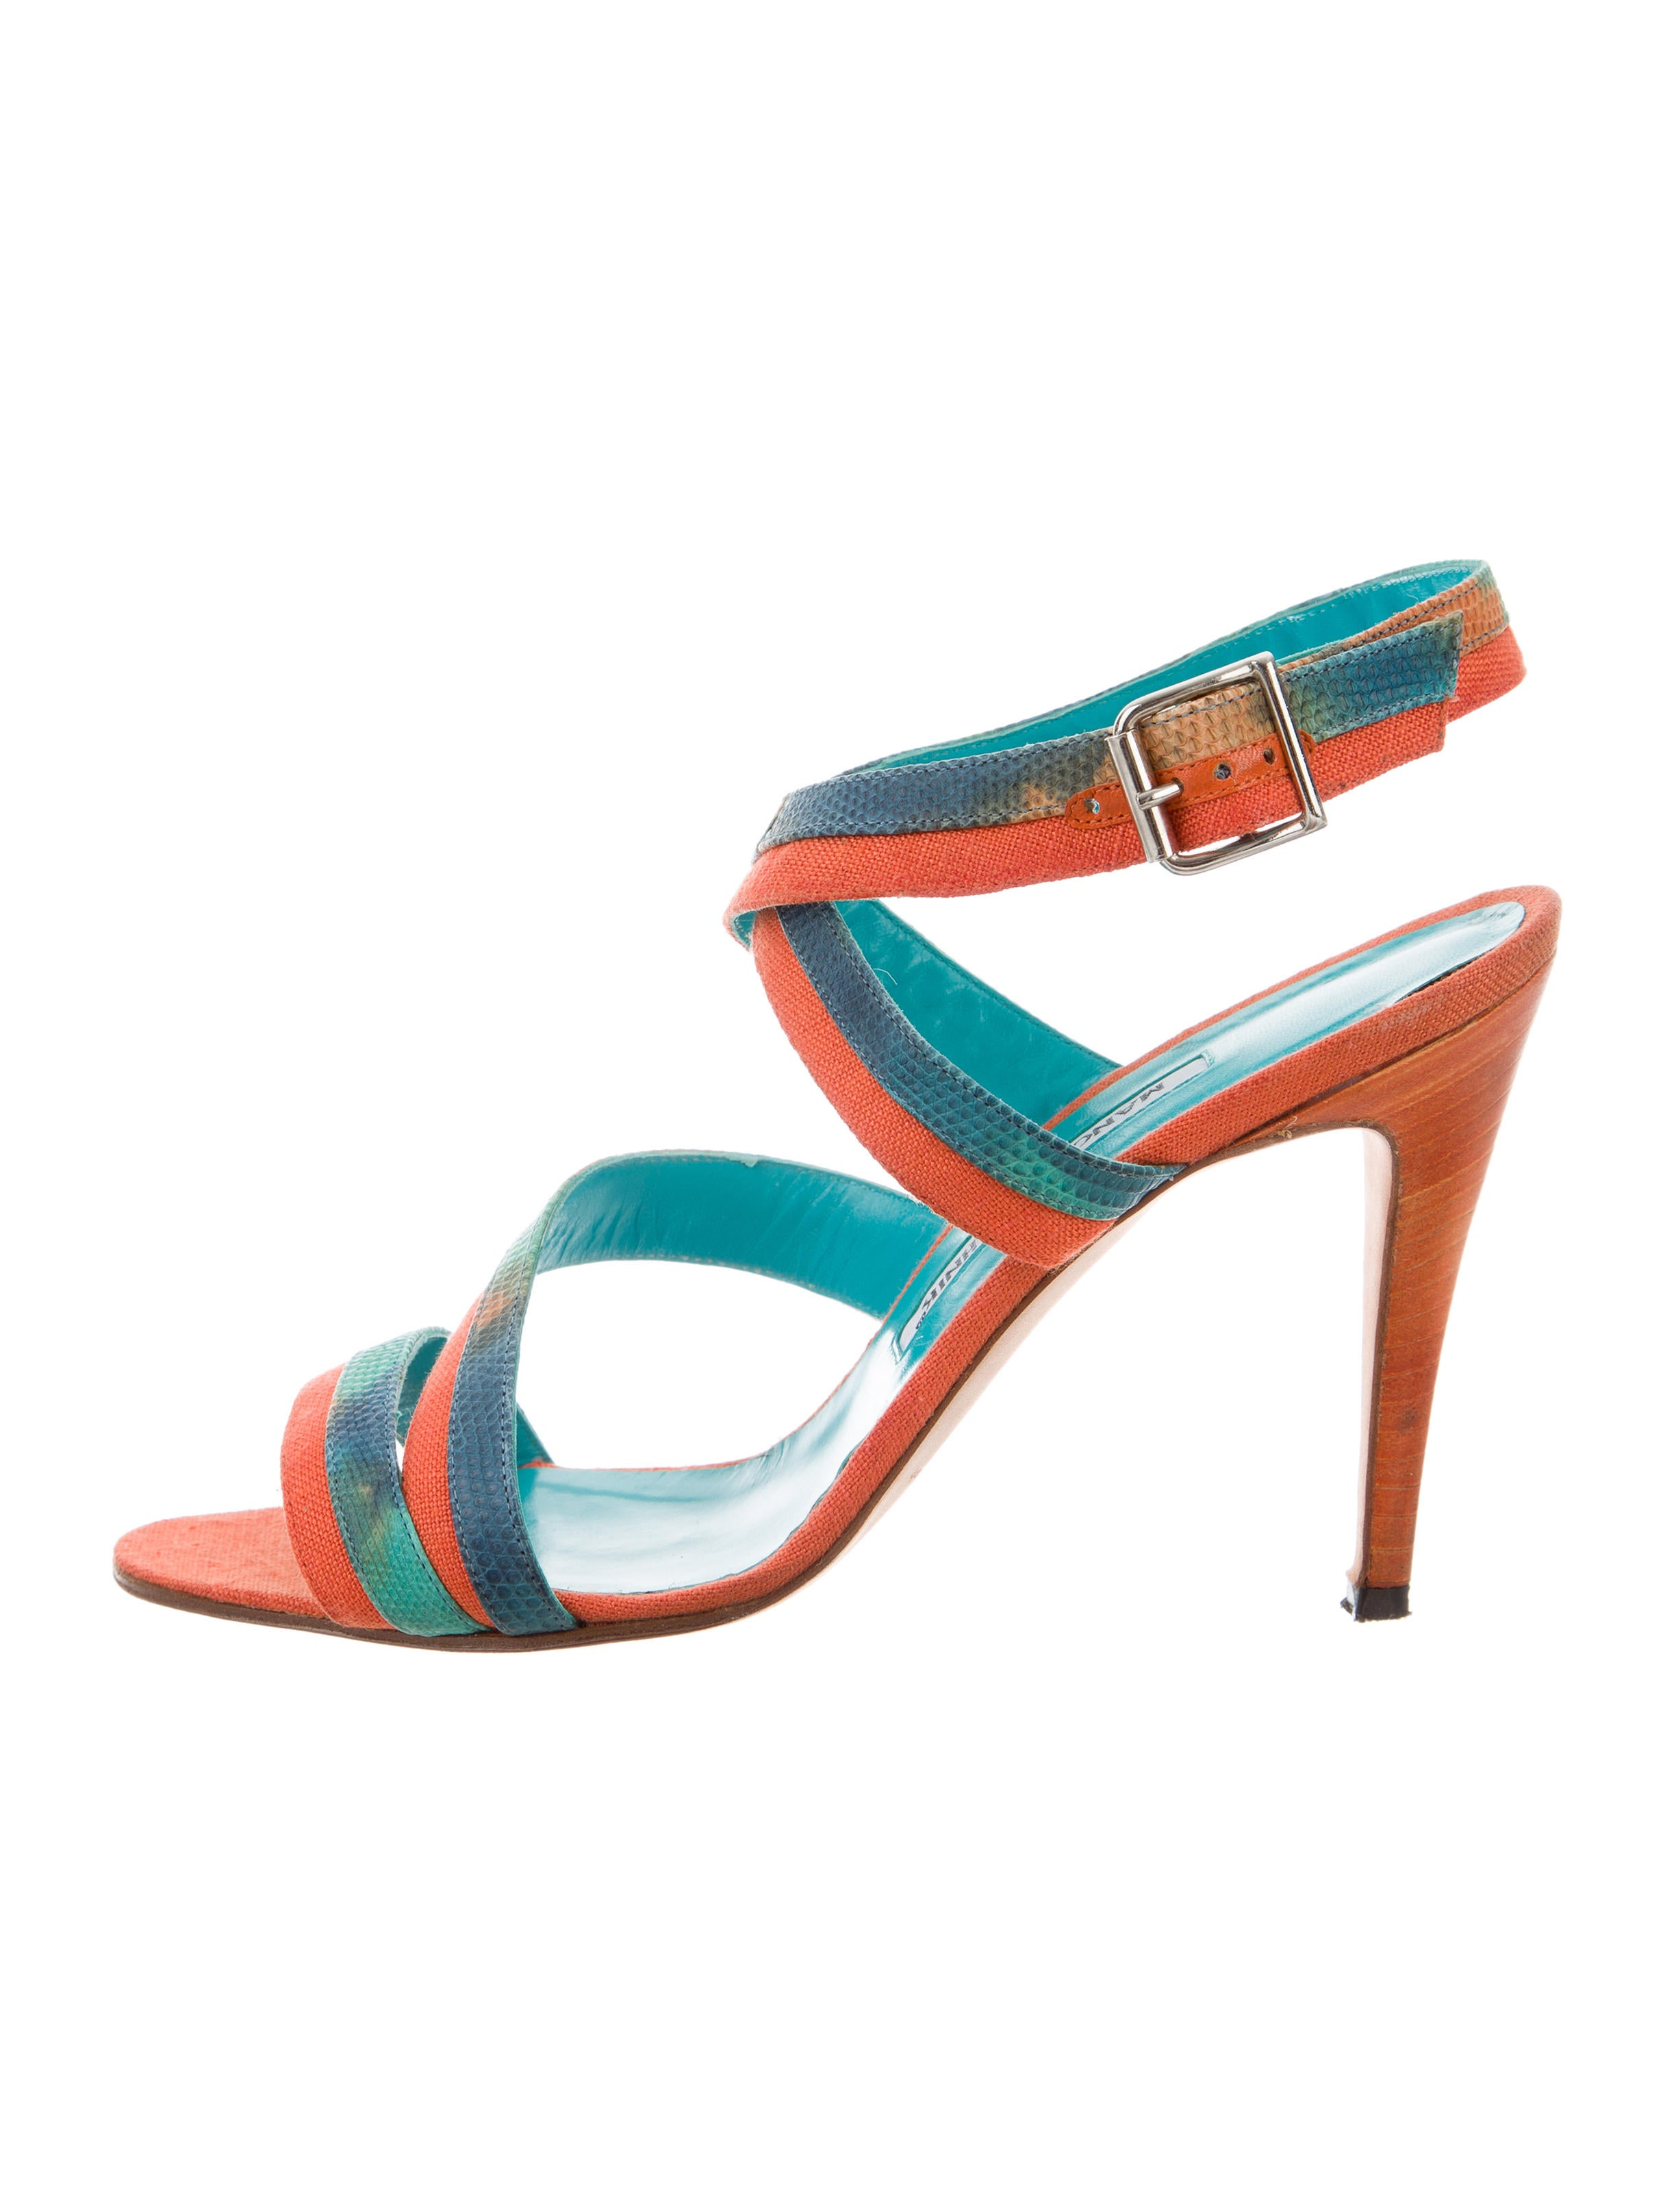 Manolo Blahnik Karung-Accented Multistrap Sandals buy cheap for nice outlet locations online 2VJFnf8p